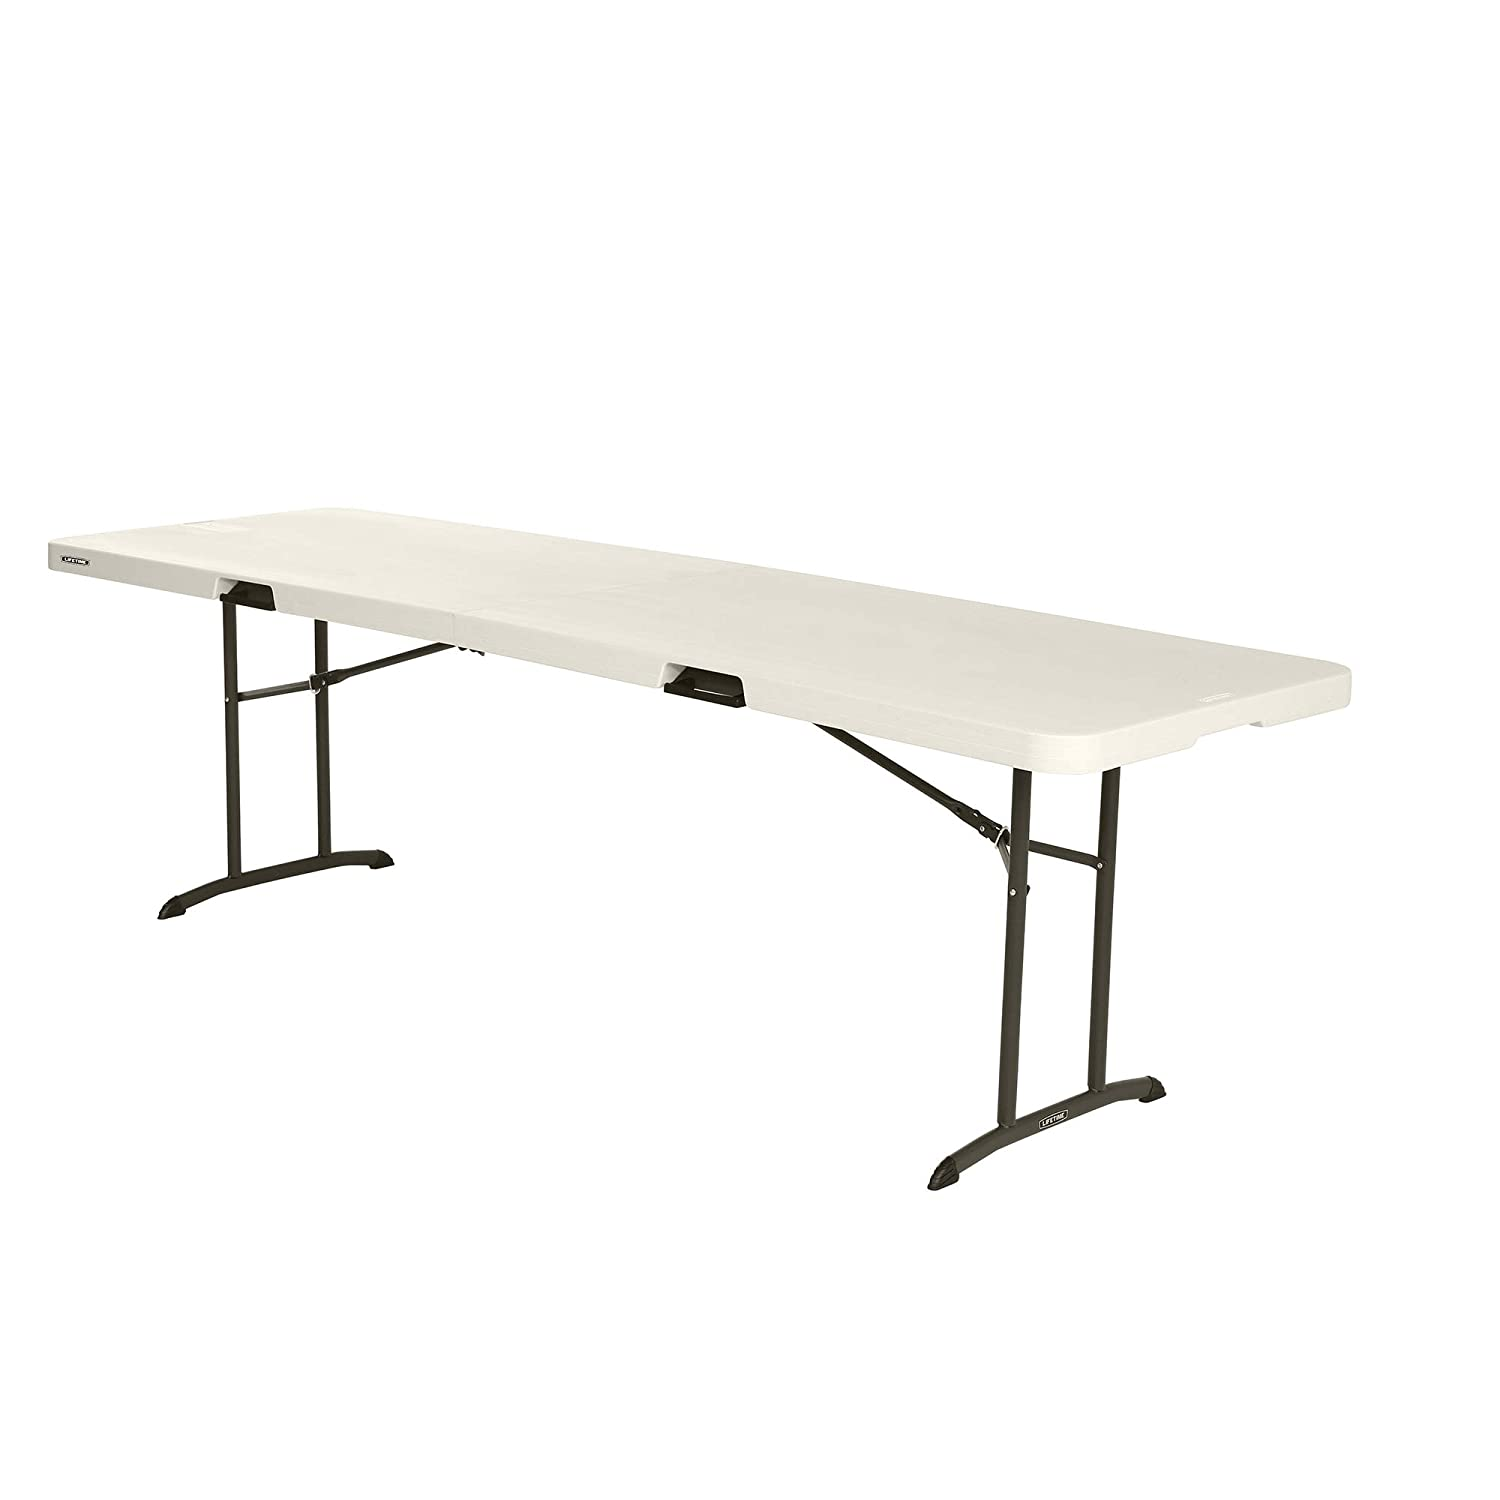 Lifetime 80175 Fold In Half Banquet Table, 8 Feet, Almond